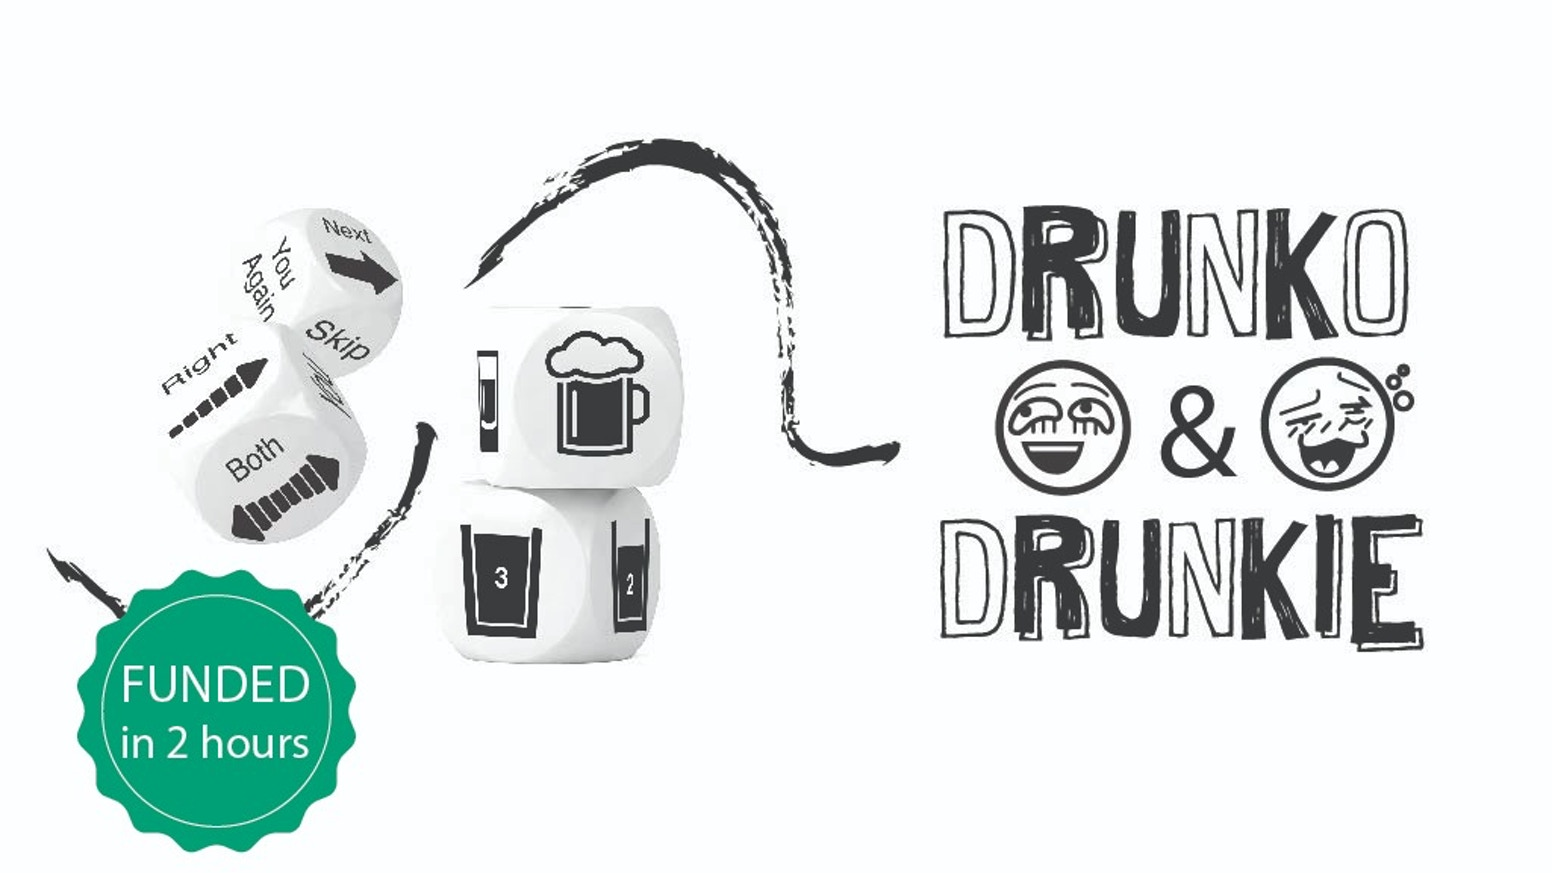 Drunko & Drunkie - the ultimate ice breaker / party game. 